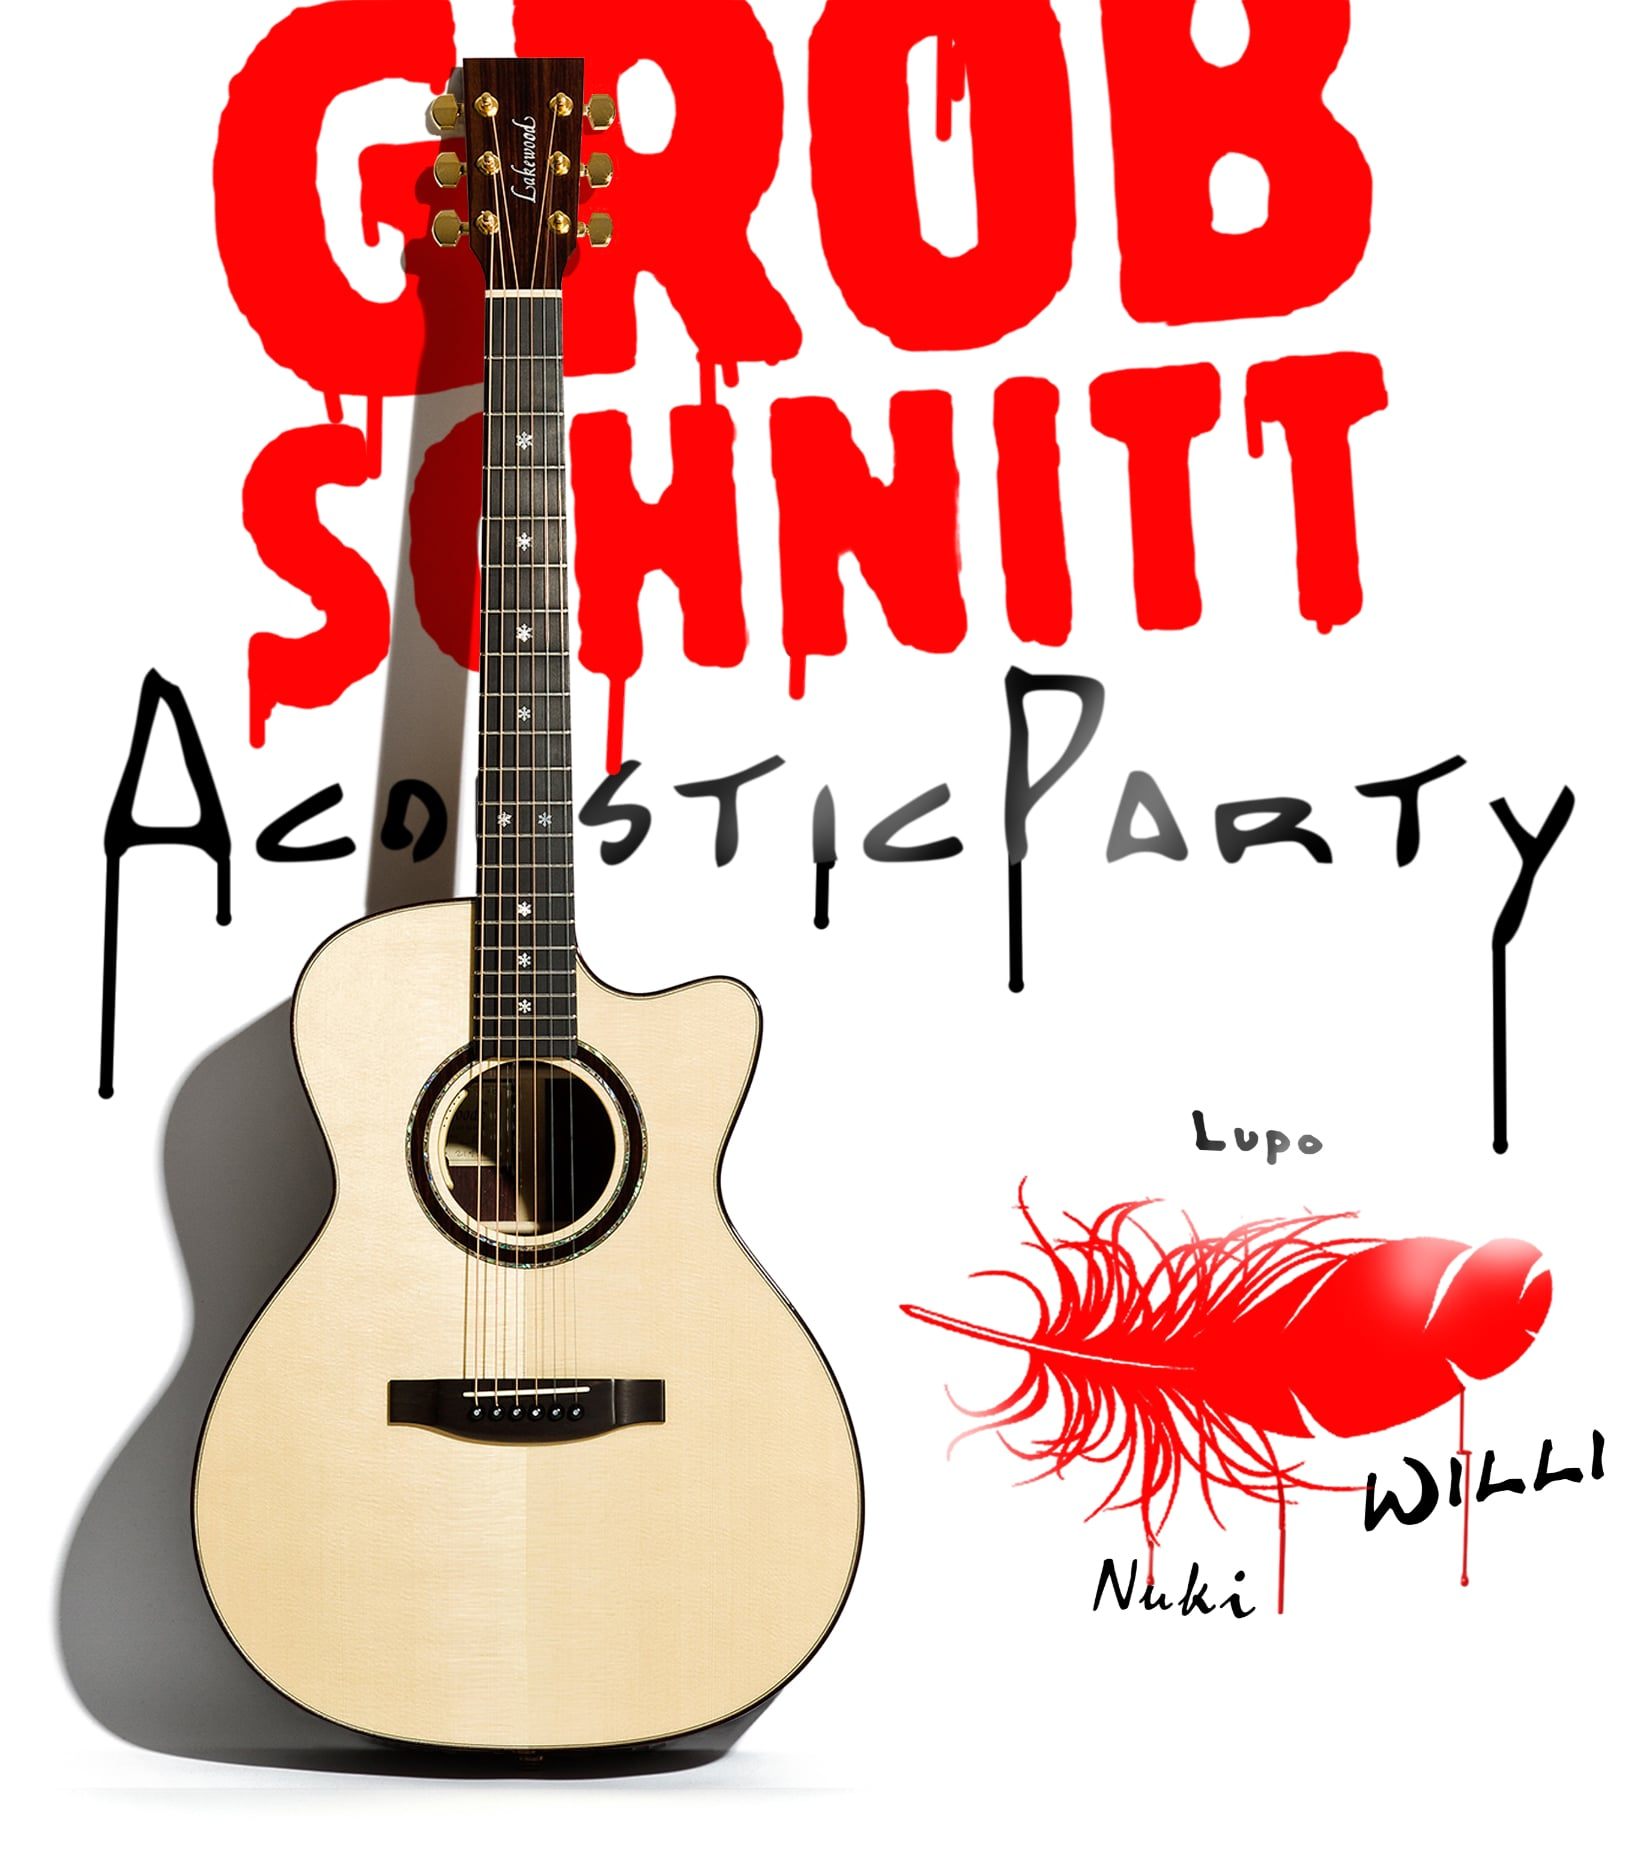 Plakat Grobschnitt Acoustic Party